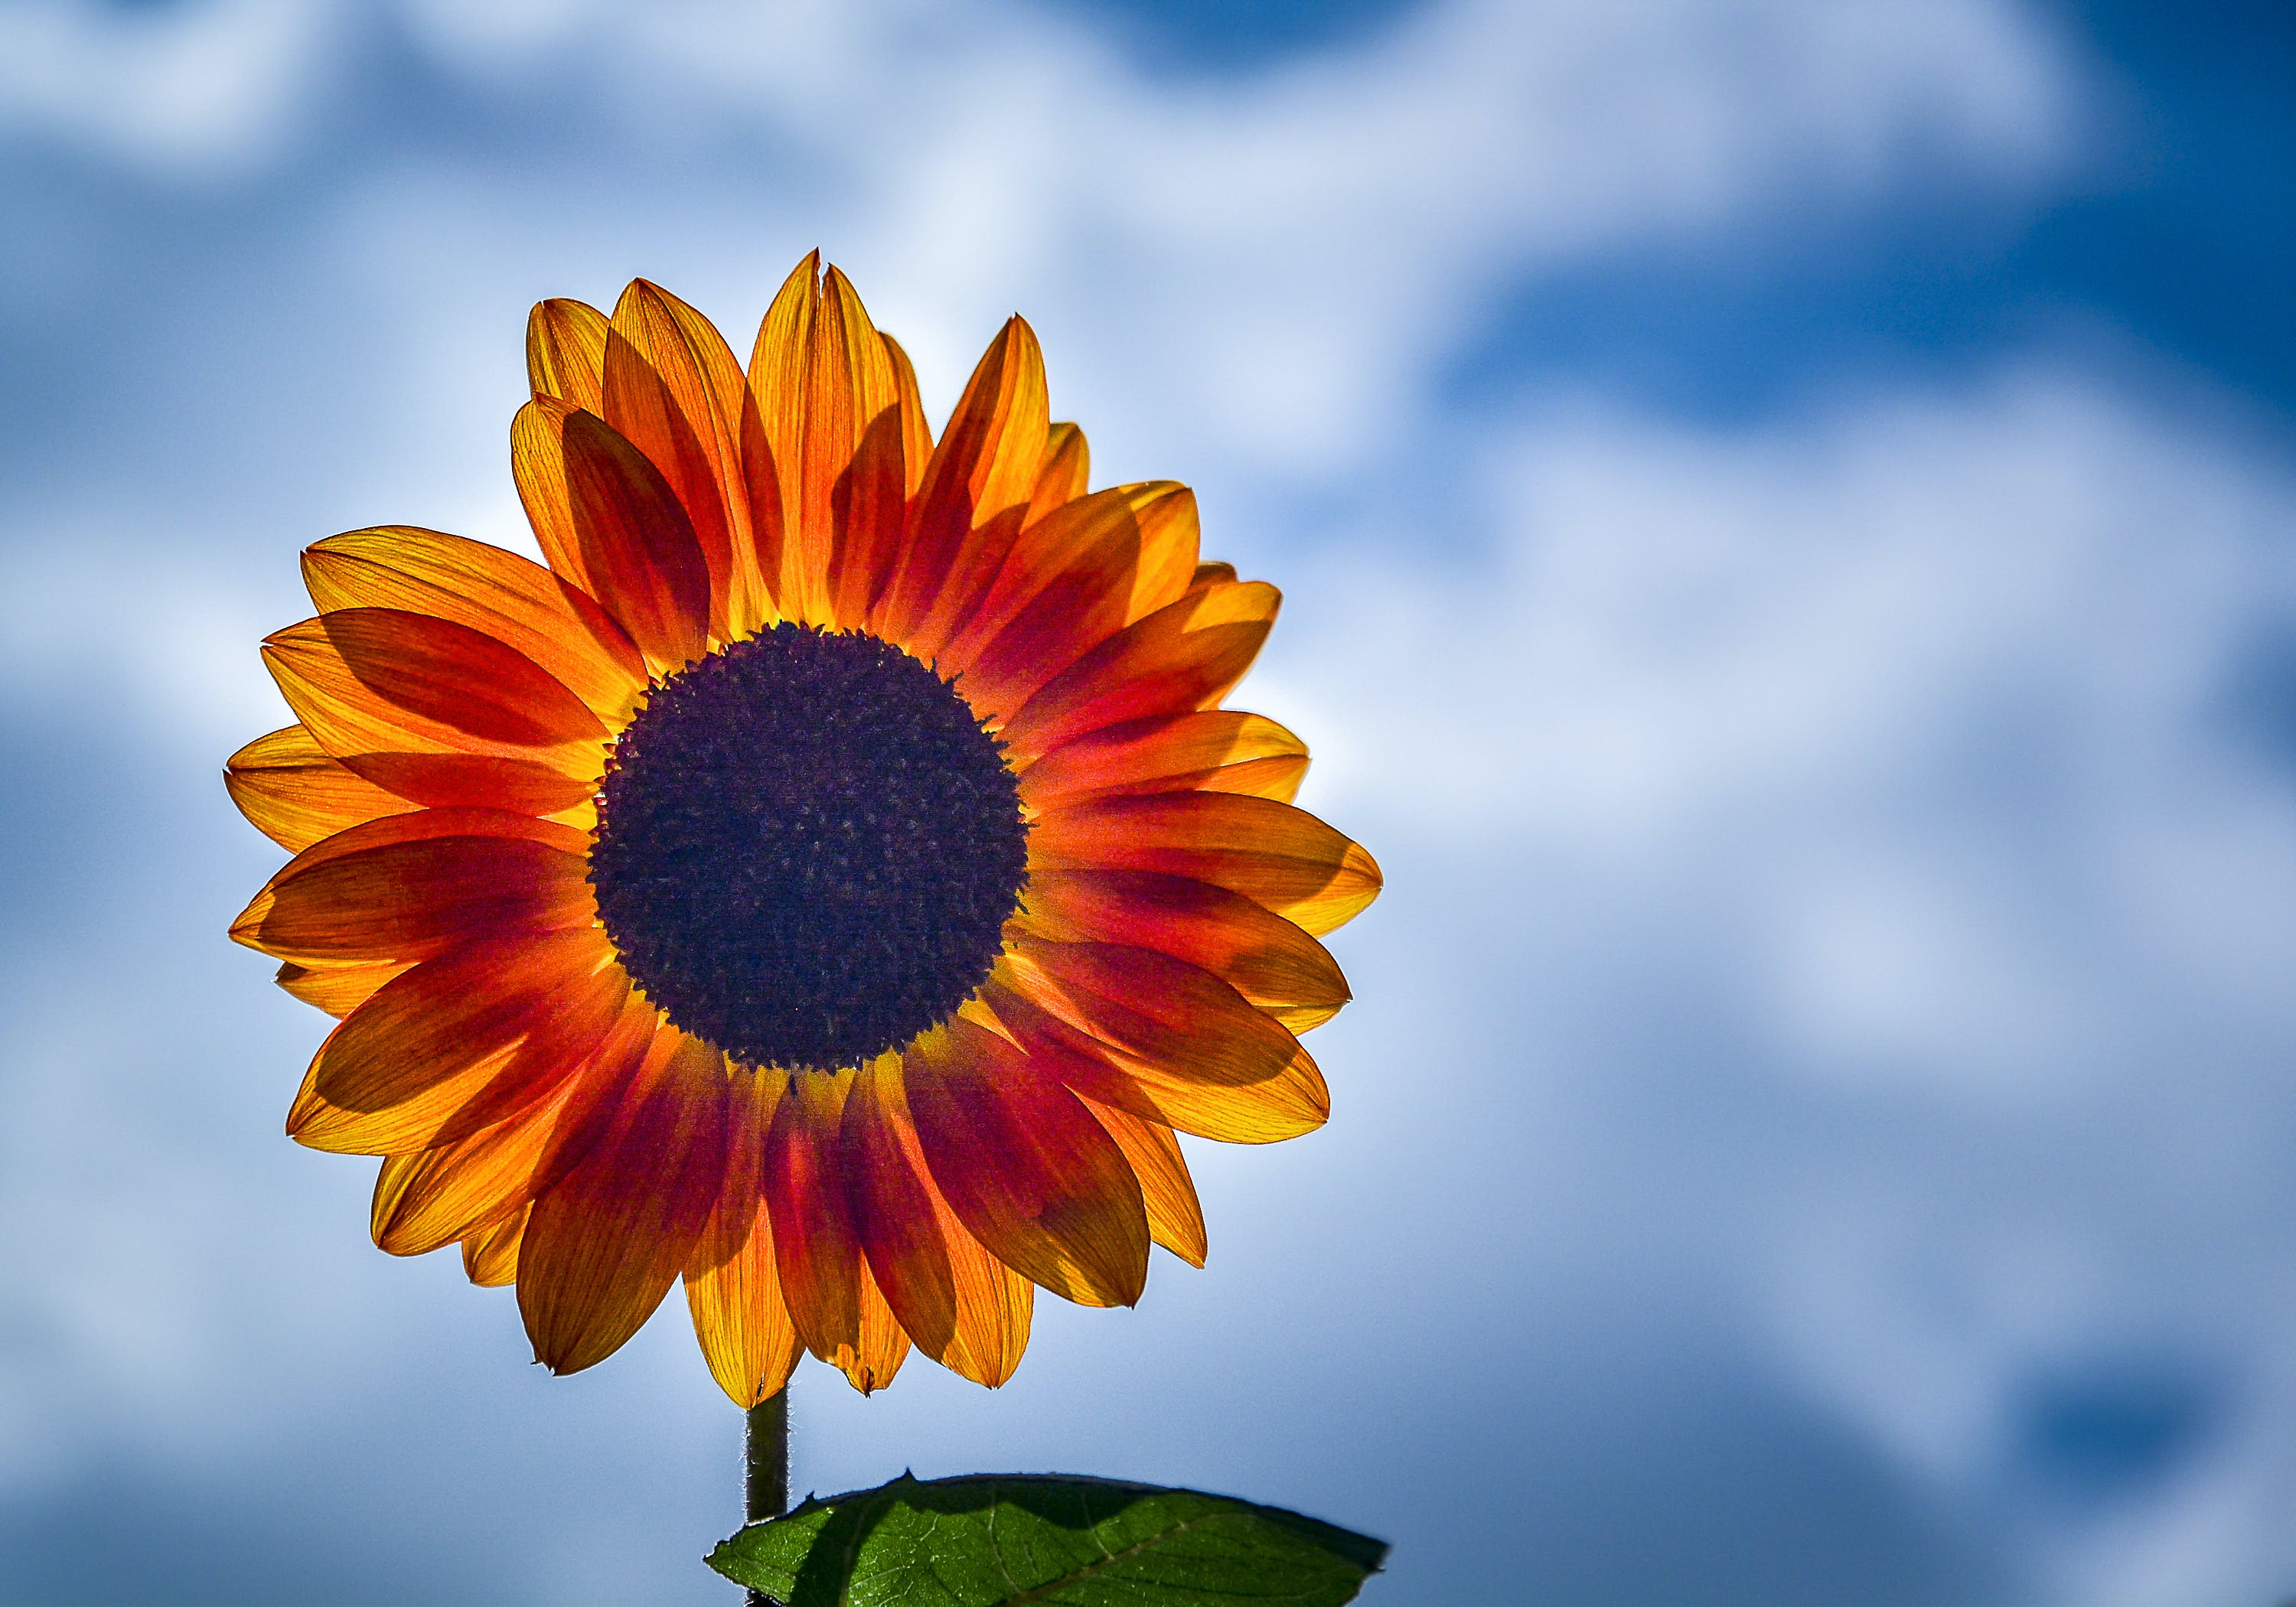 Selective Focus Photography of Yellow Sunflower in Bloom